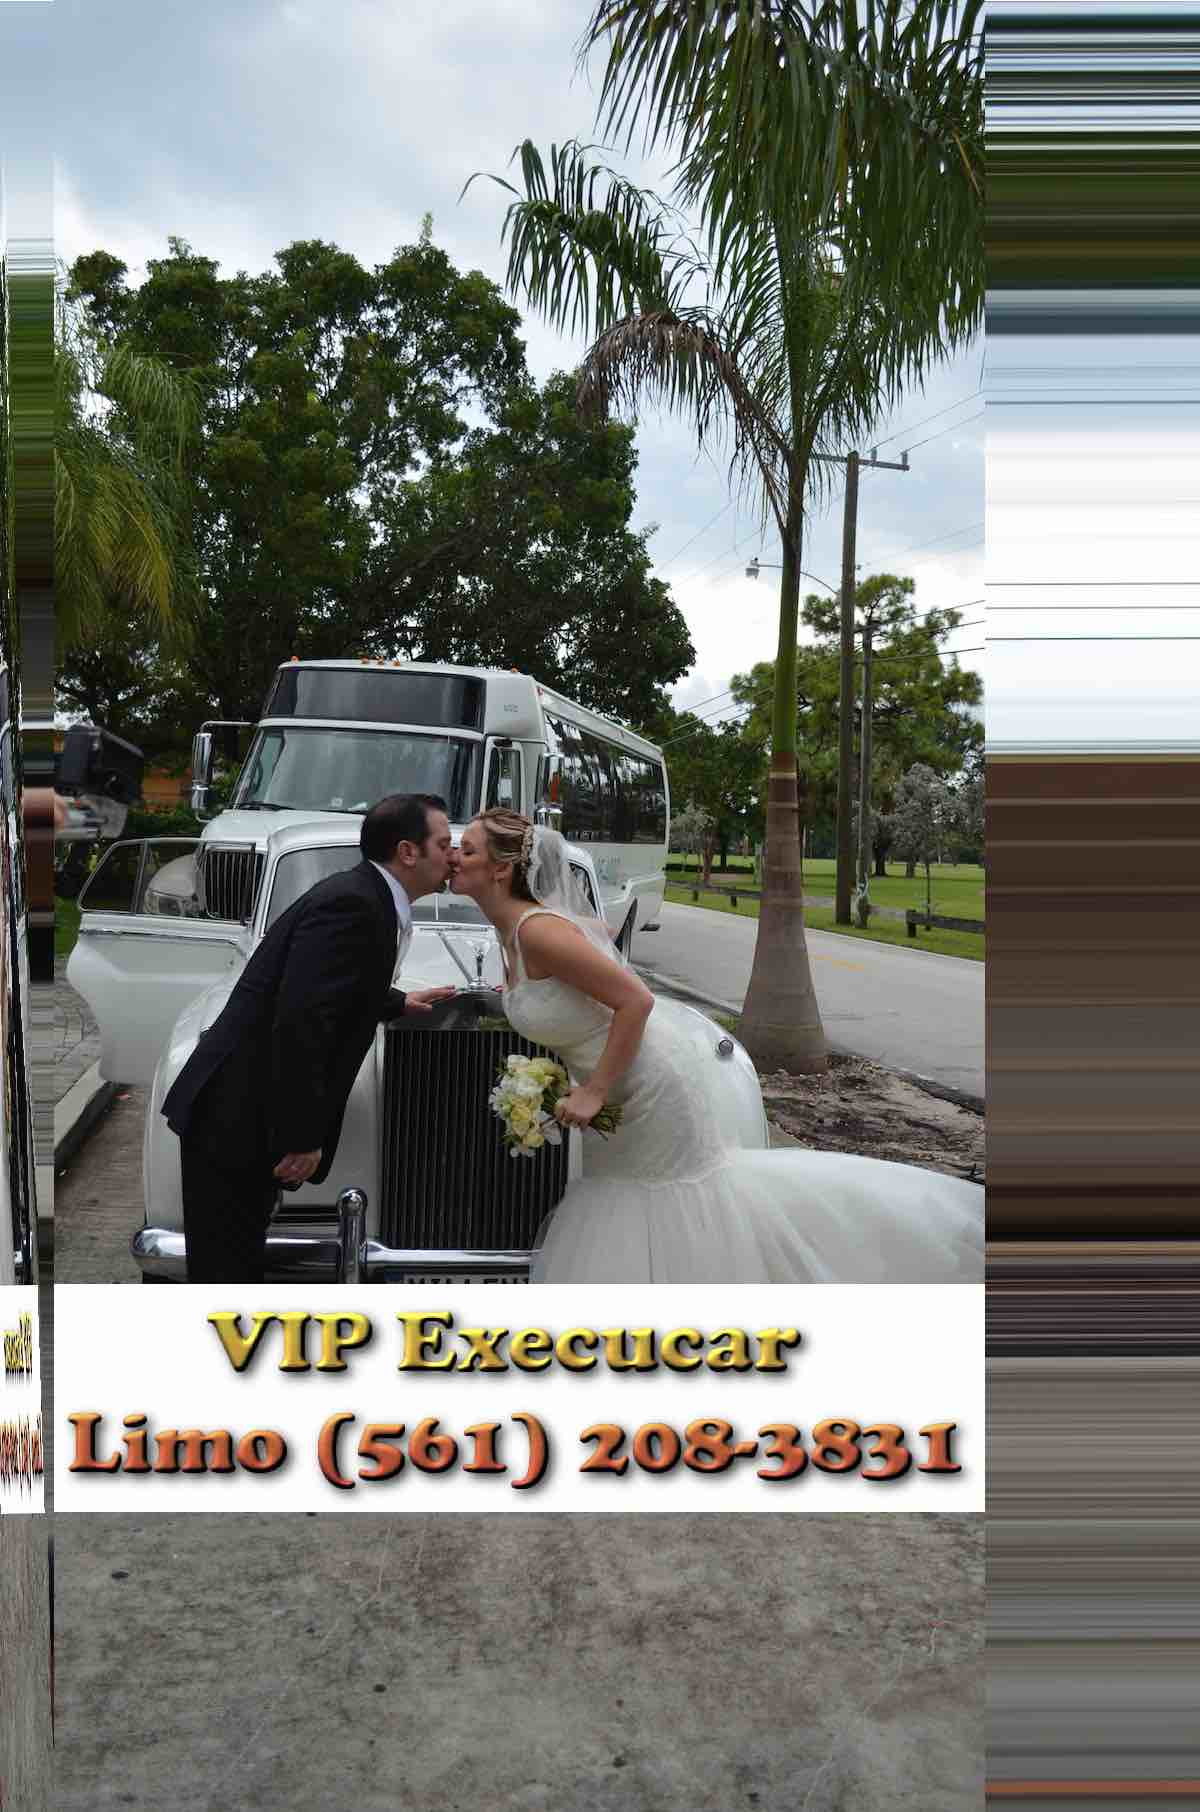 Vip Execucar is the easiest way to find Wedding Limos in Boca Raton, FL. Search for Wedding Transportation in South Florida, compare rates.